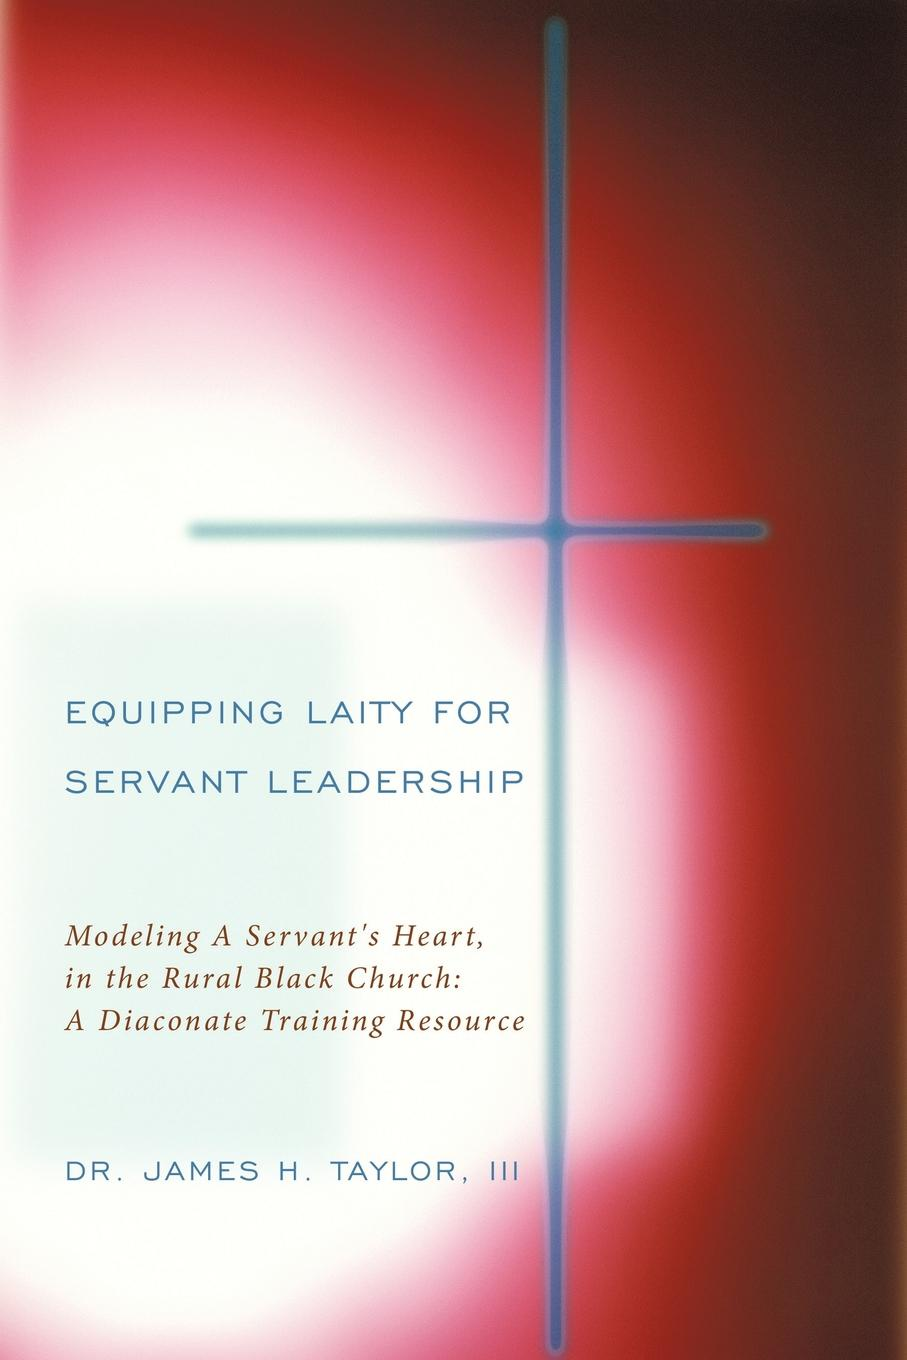 III Dr. James H. Taylor Equipping Laity For Servant Leadership. Modeling A Servant.s Heart, in the Rural Black Church: A Diaconate Training Resource bruce loeffler the experience the 5 principles of disney service and relationship excellence